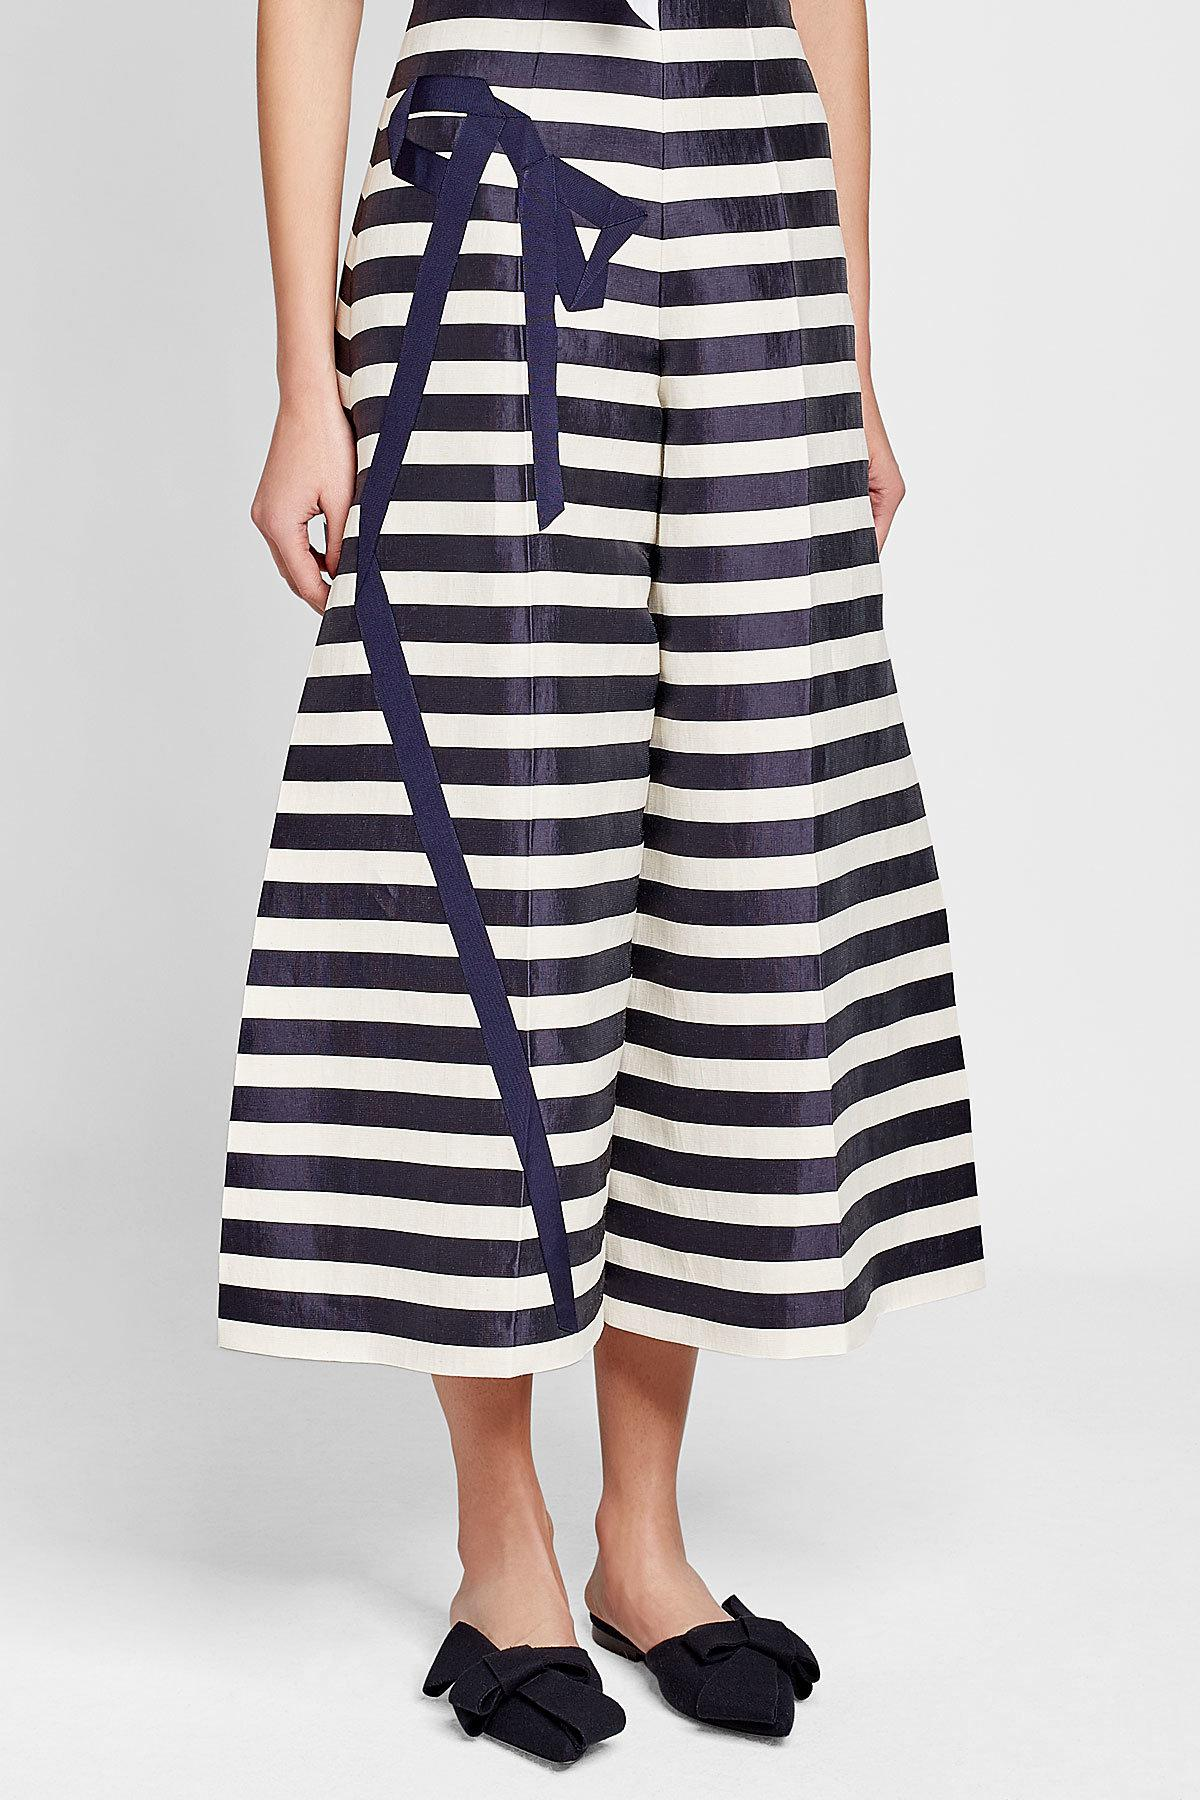 Visit New striped flared cropped trousers - Blue Delpozo Get To Buy Sale Online Buy Cheap Pictures Explore Online Q1VjLmctj0